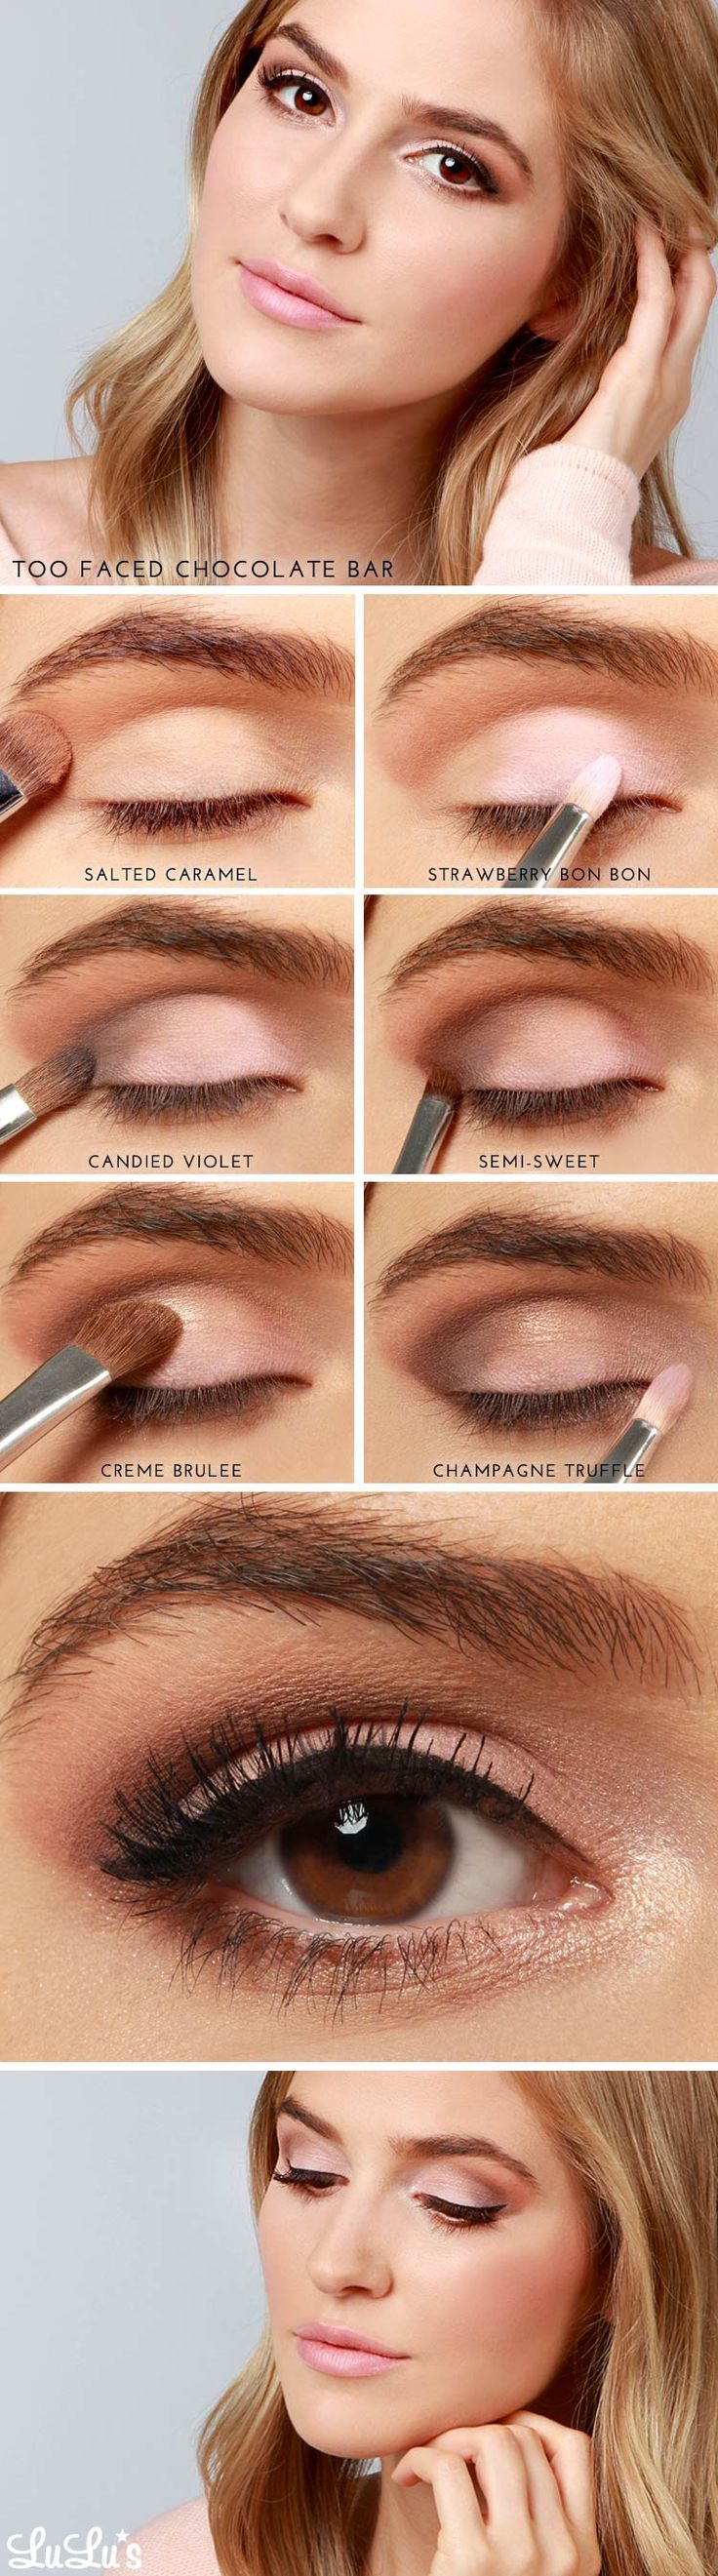 Lulus how to too faced chocolate bar eye shadow tutorial amazing eye makeup tutorial for a subtle natural smokey eye using the toofaced chocolate bar baditri Gallery